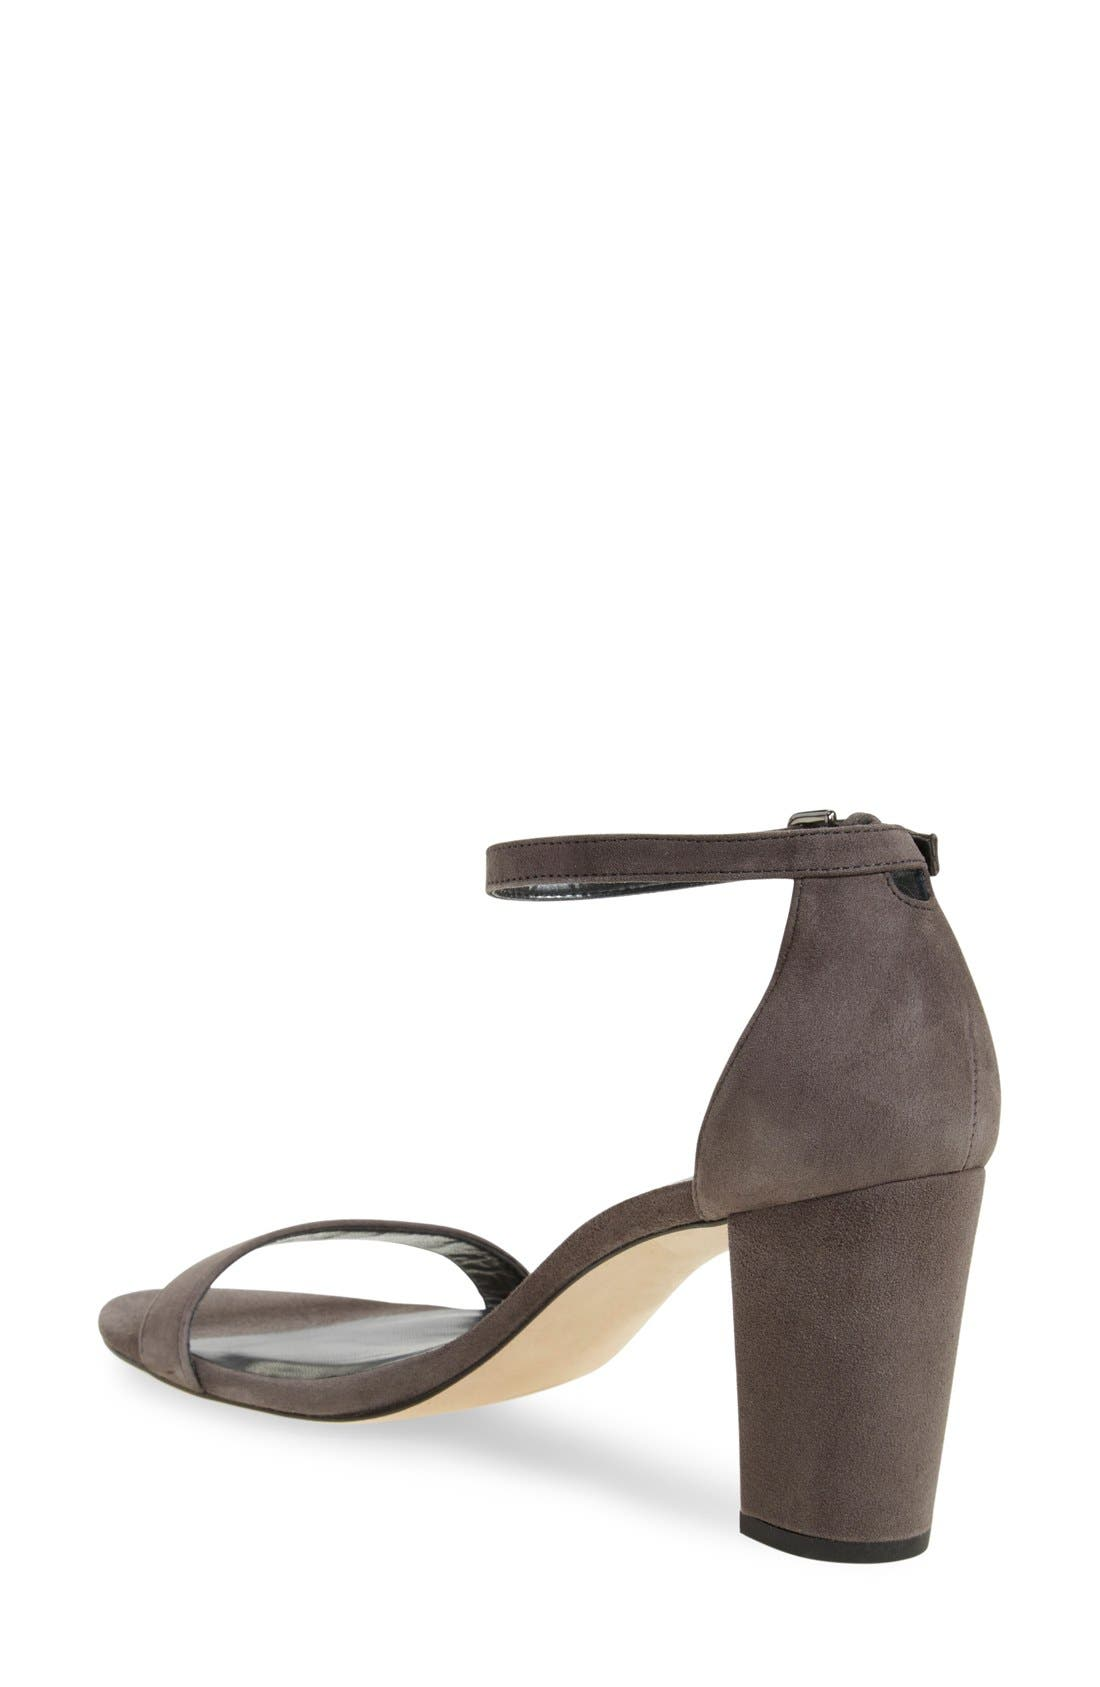 NearlyNude Ankle Strap Sandal,                             Alternate thumbnail 121, color,